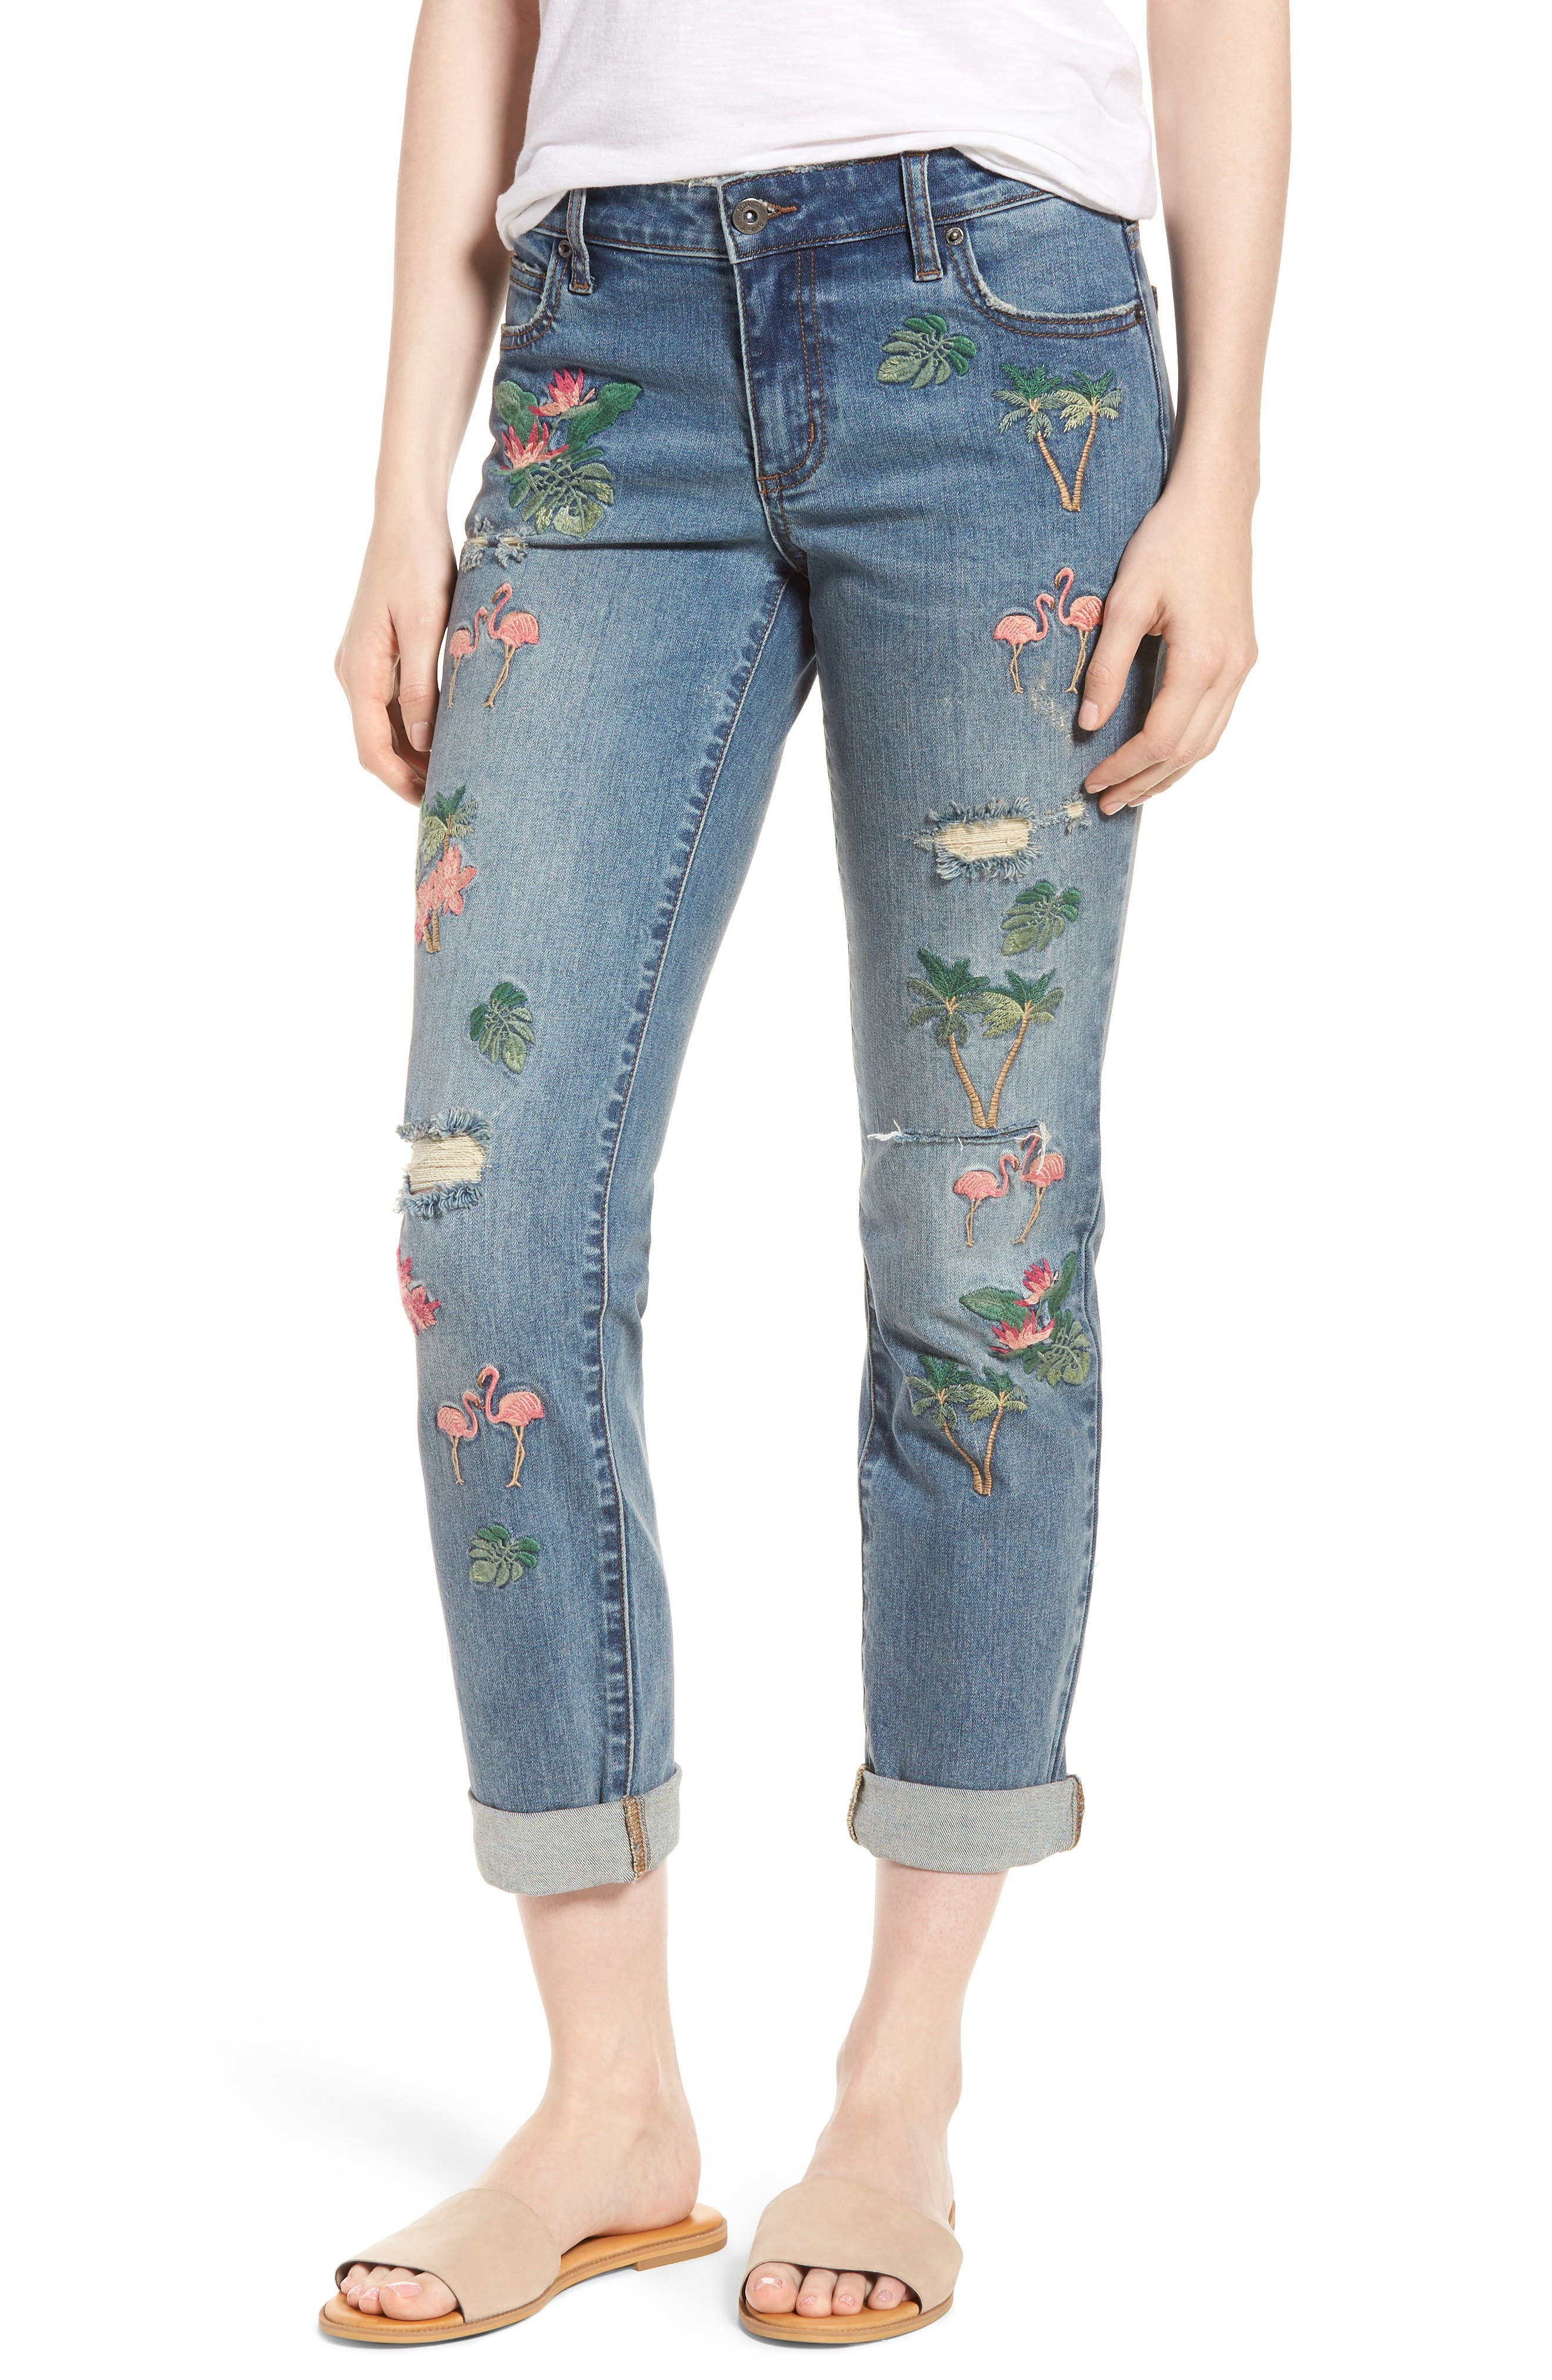 Flamingo Embroidery Jeans,                             Main thumbnail 1, color,                             Blue W/ Embroider